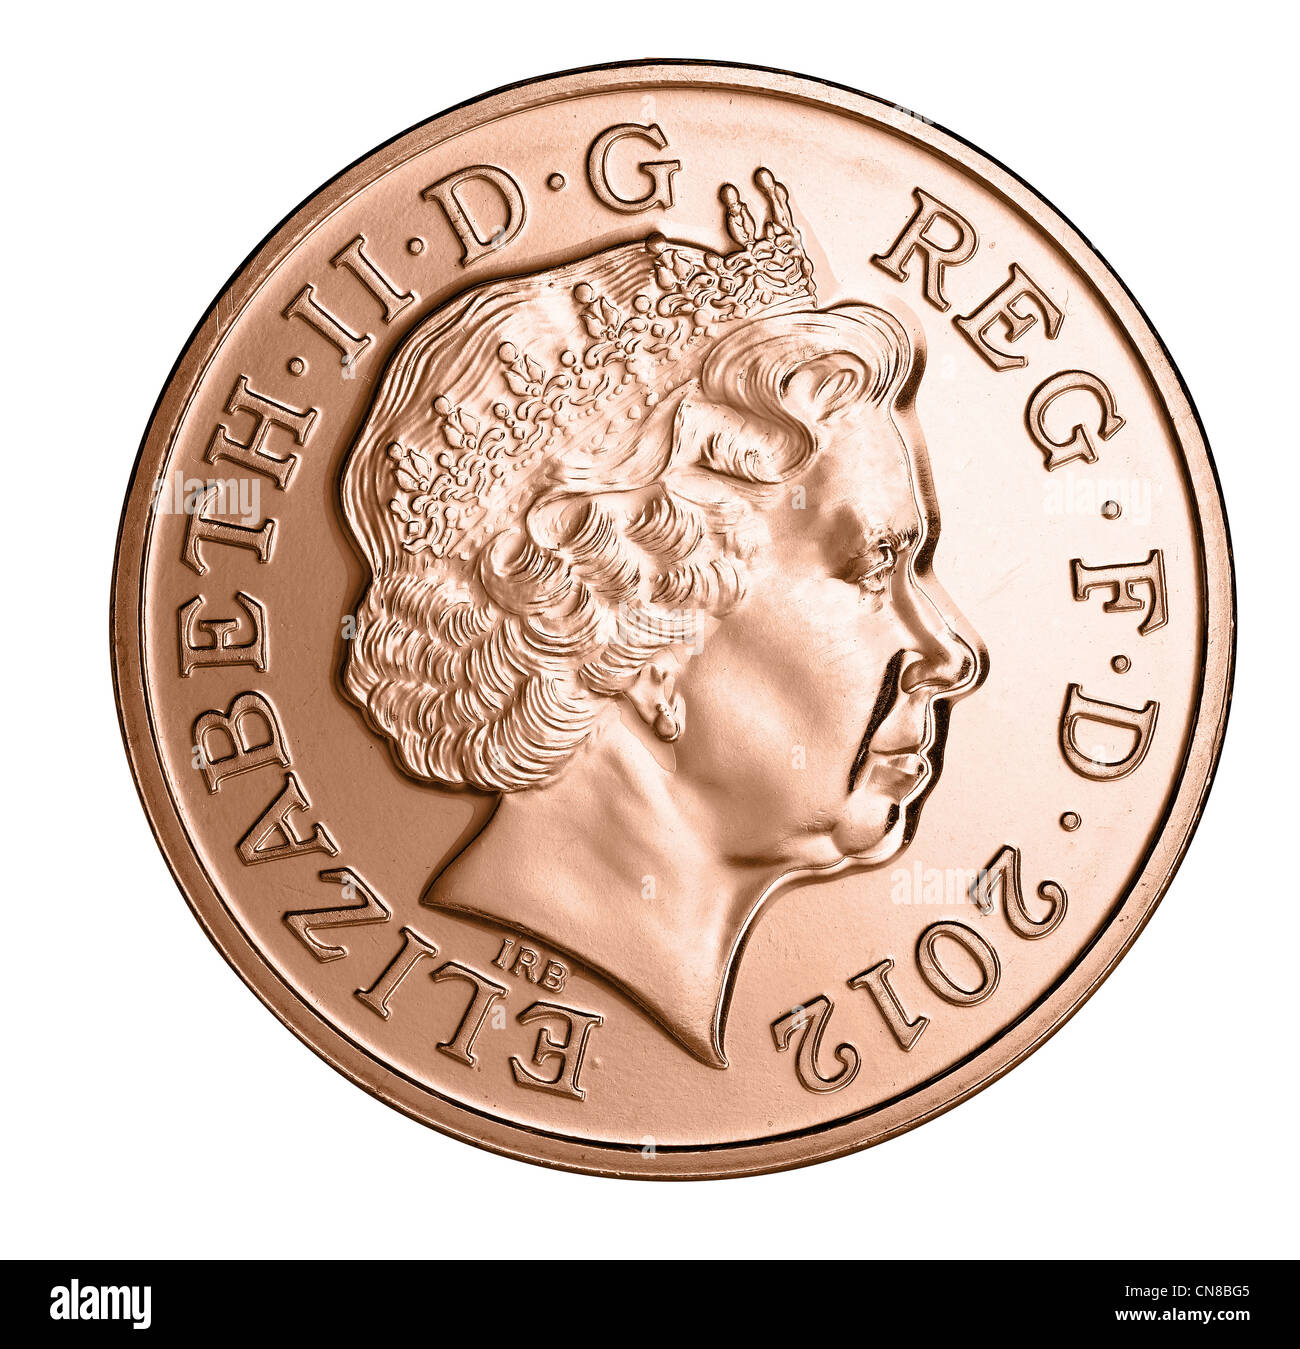 2p Two Pence Coin Head On Heads Obverse Stock Photo